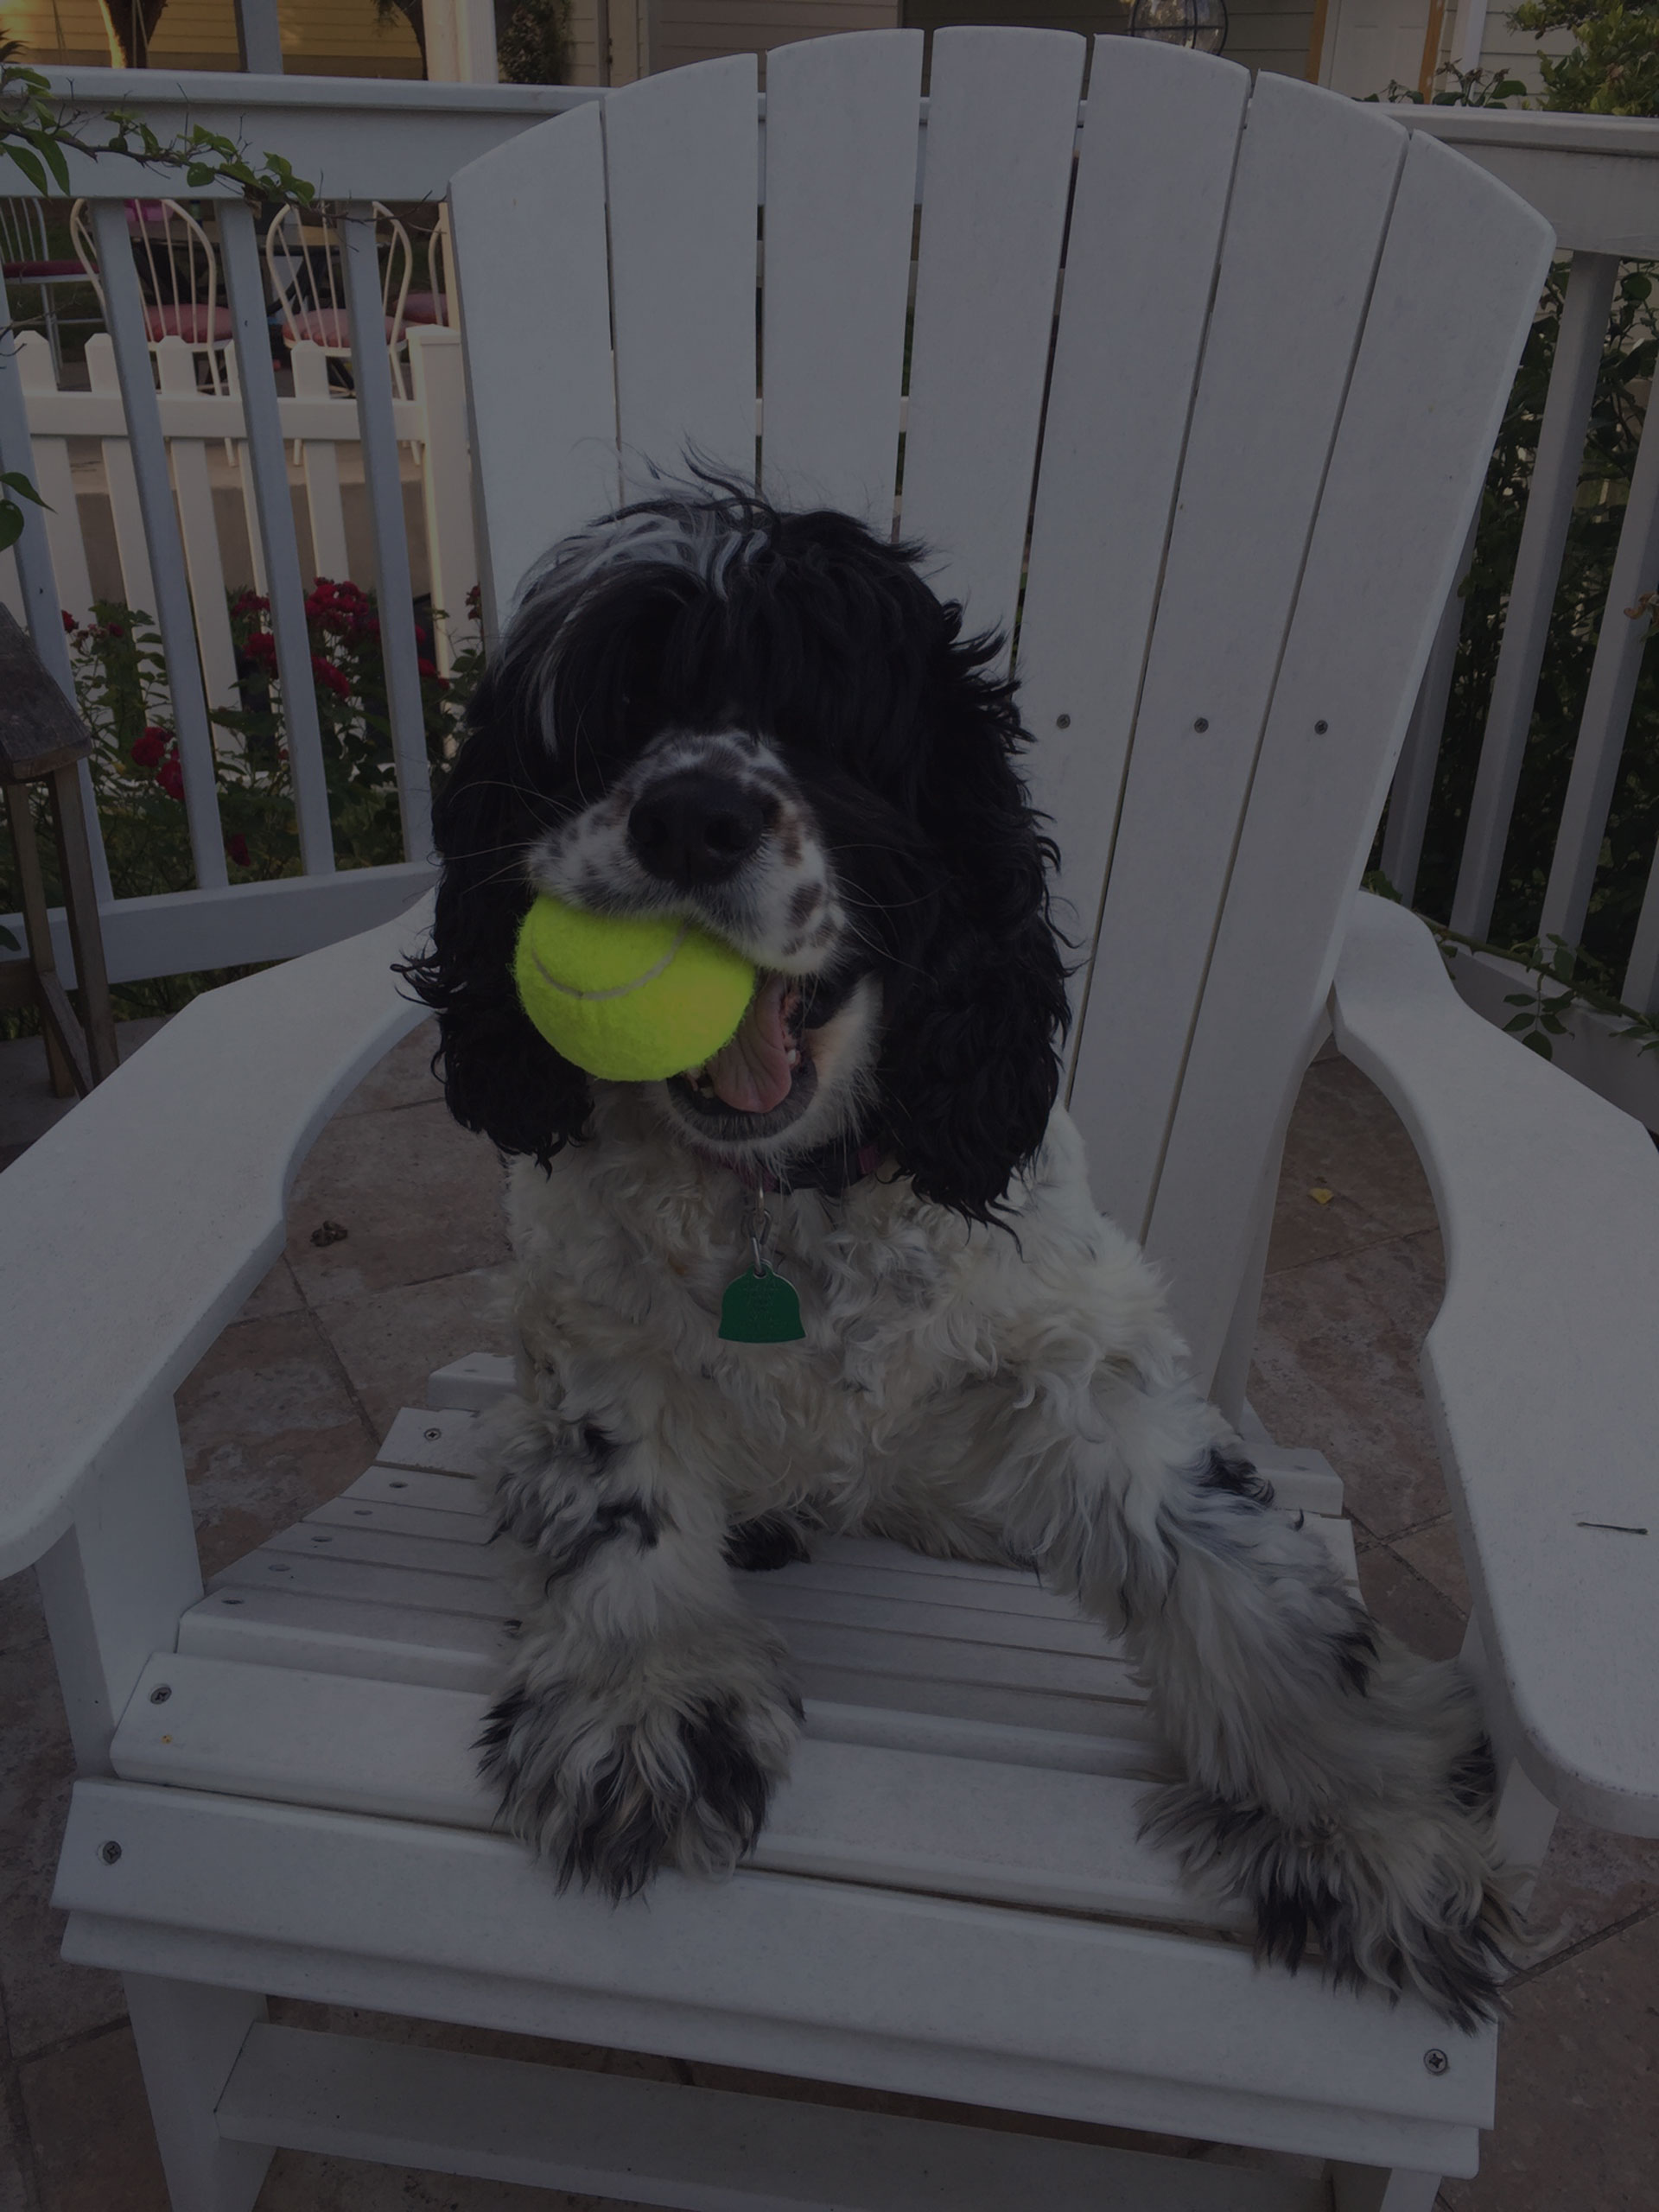 cute dog holding a ball in the mouth sitting on the wooden chair